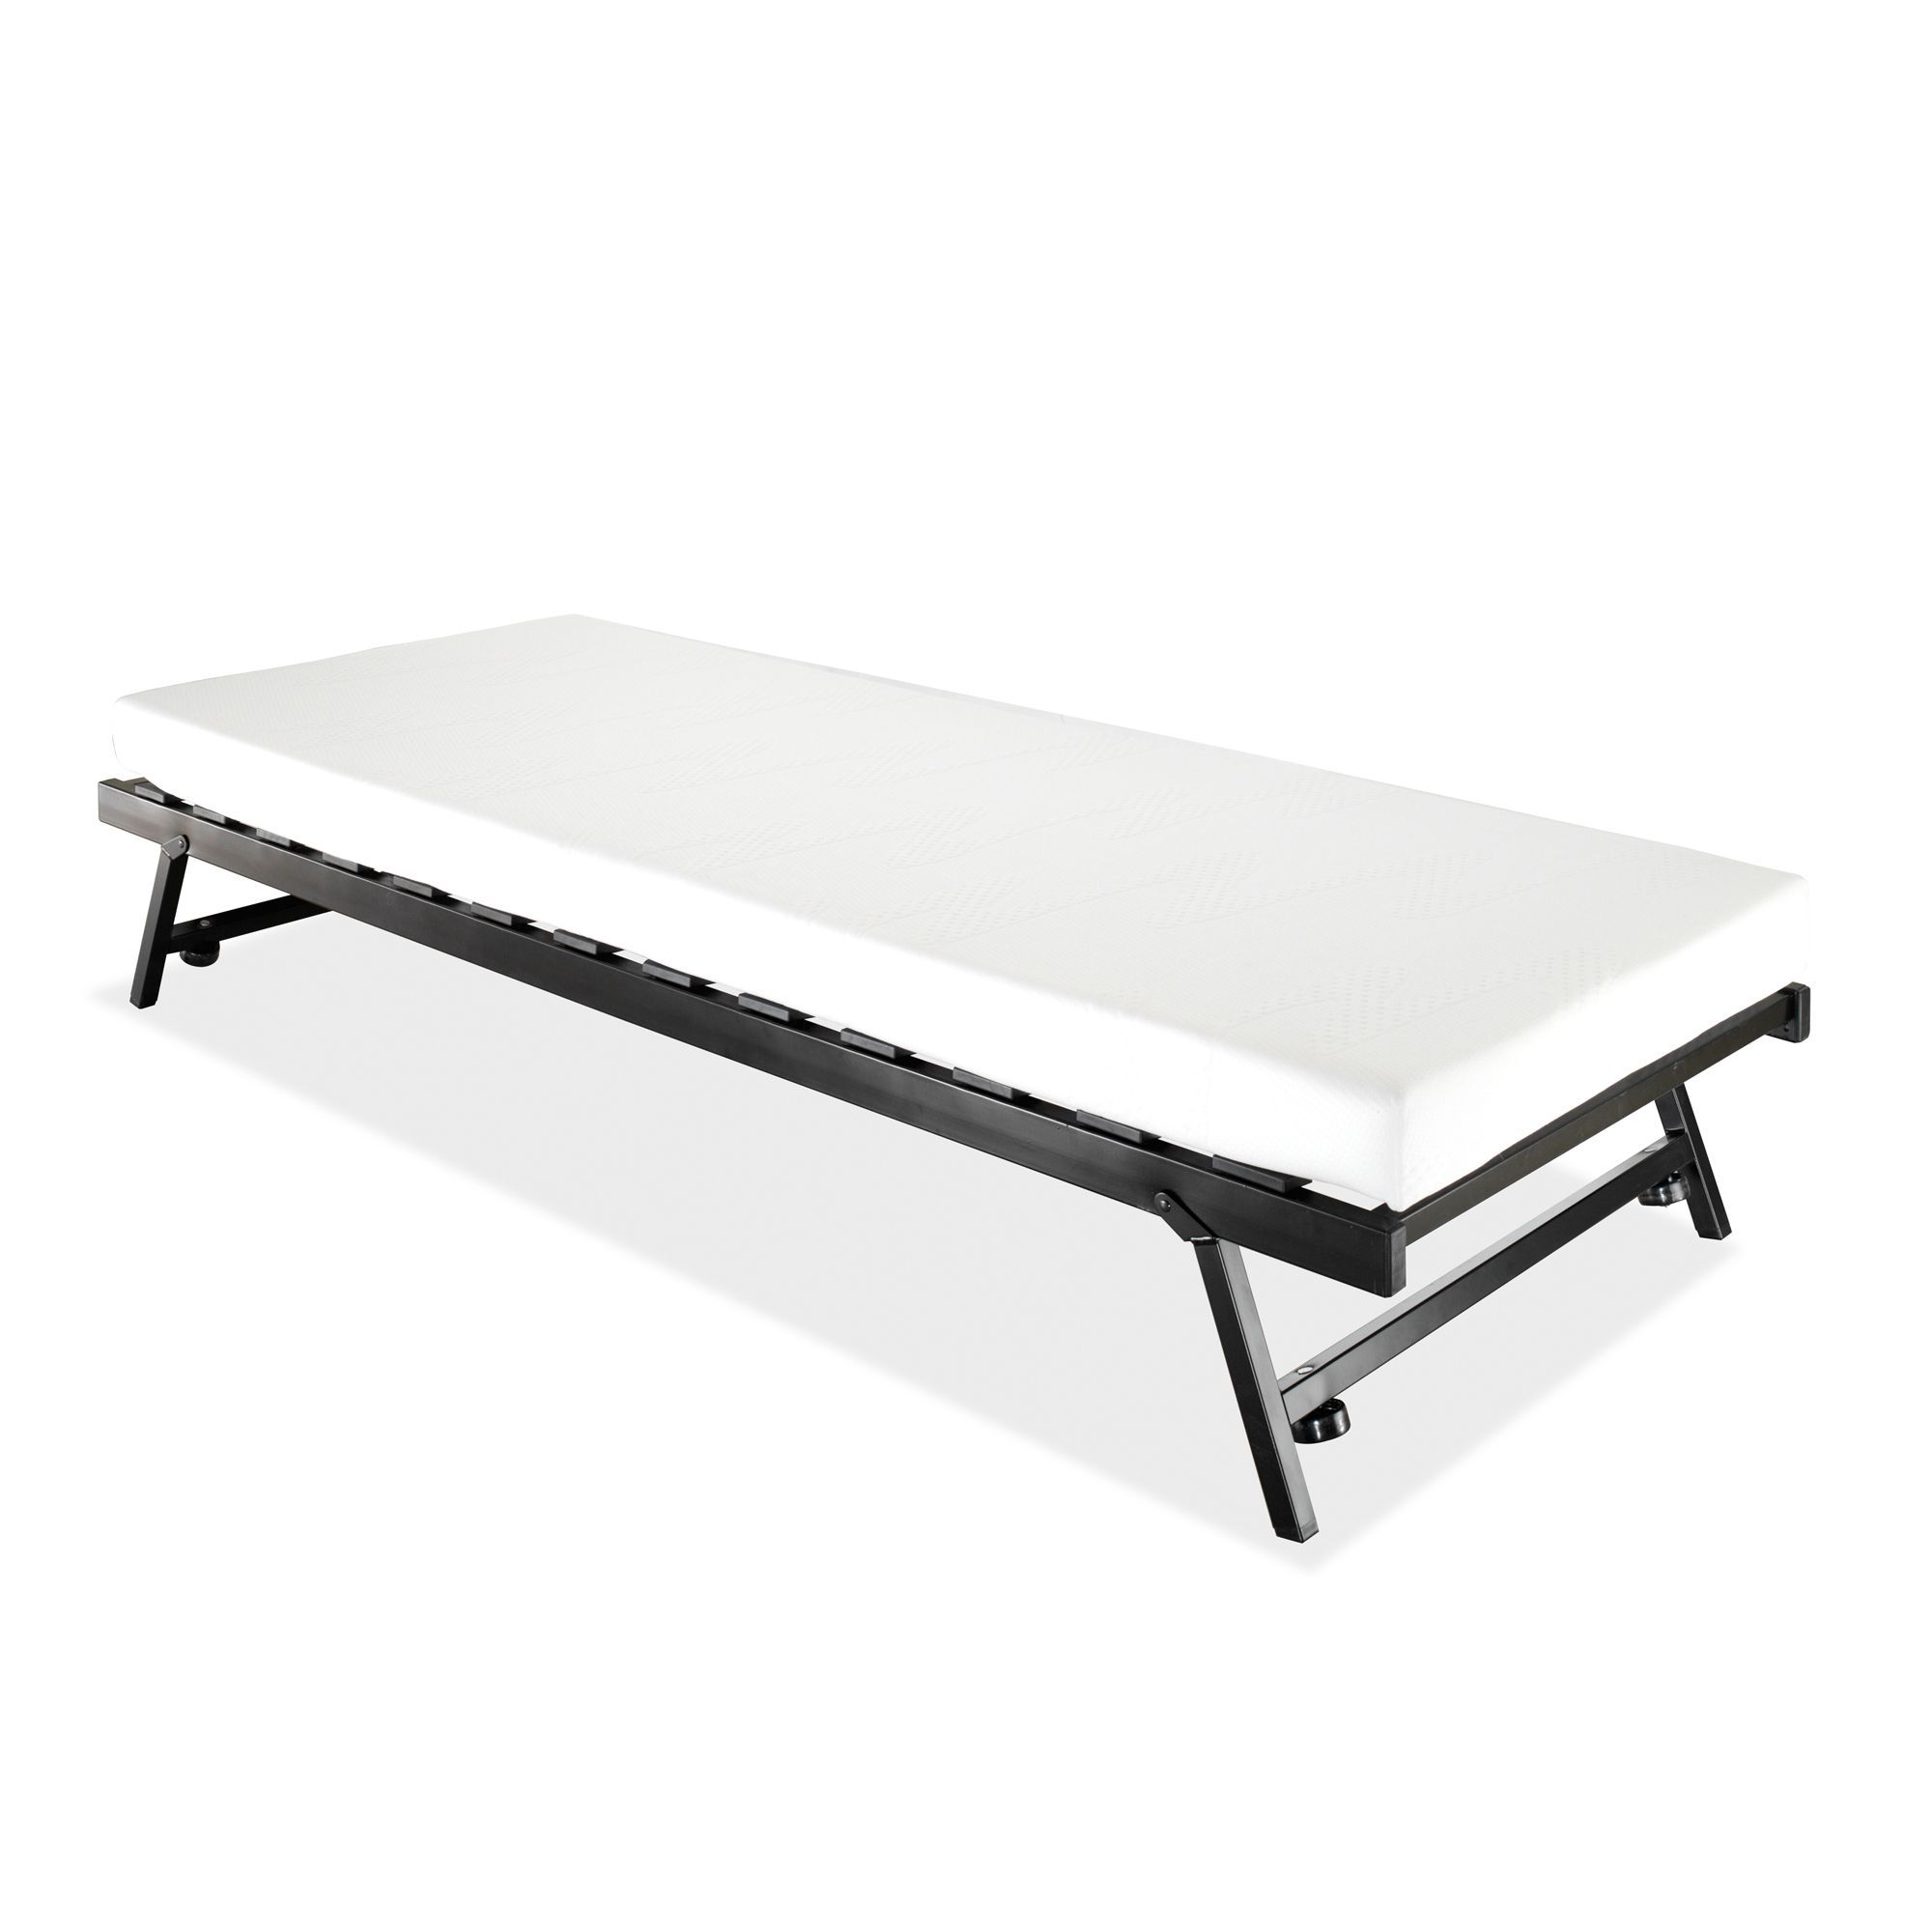 Jay Be Trundle Single Guest Bed With Memory Foam Mattress Departments Diy At B Q